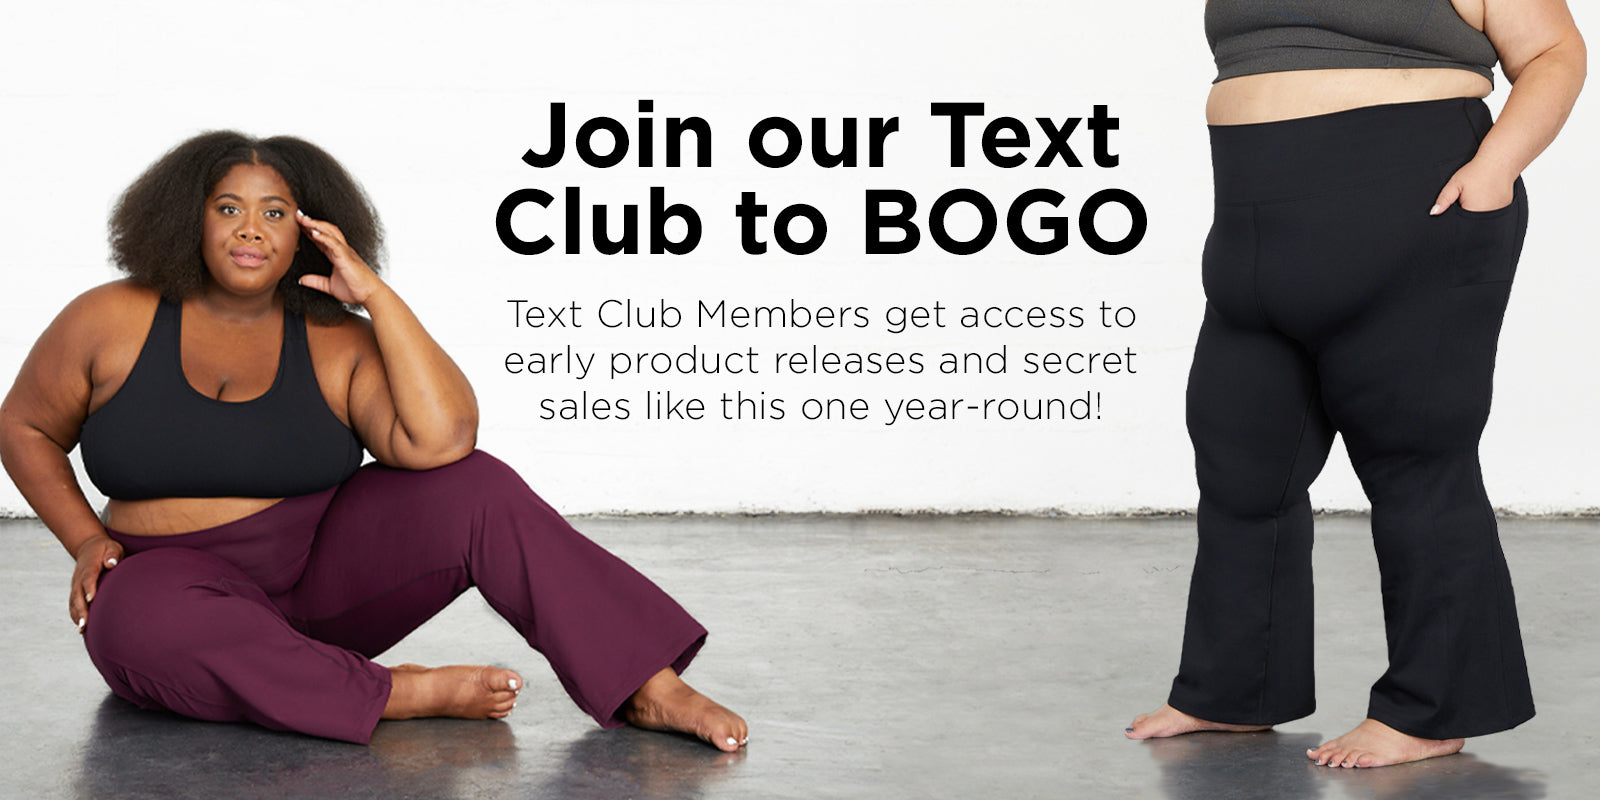 Join the Superfit Hero Text Club to BOGO 25% OFF